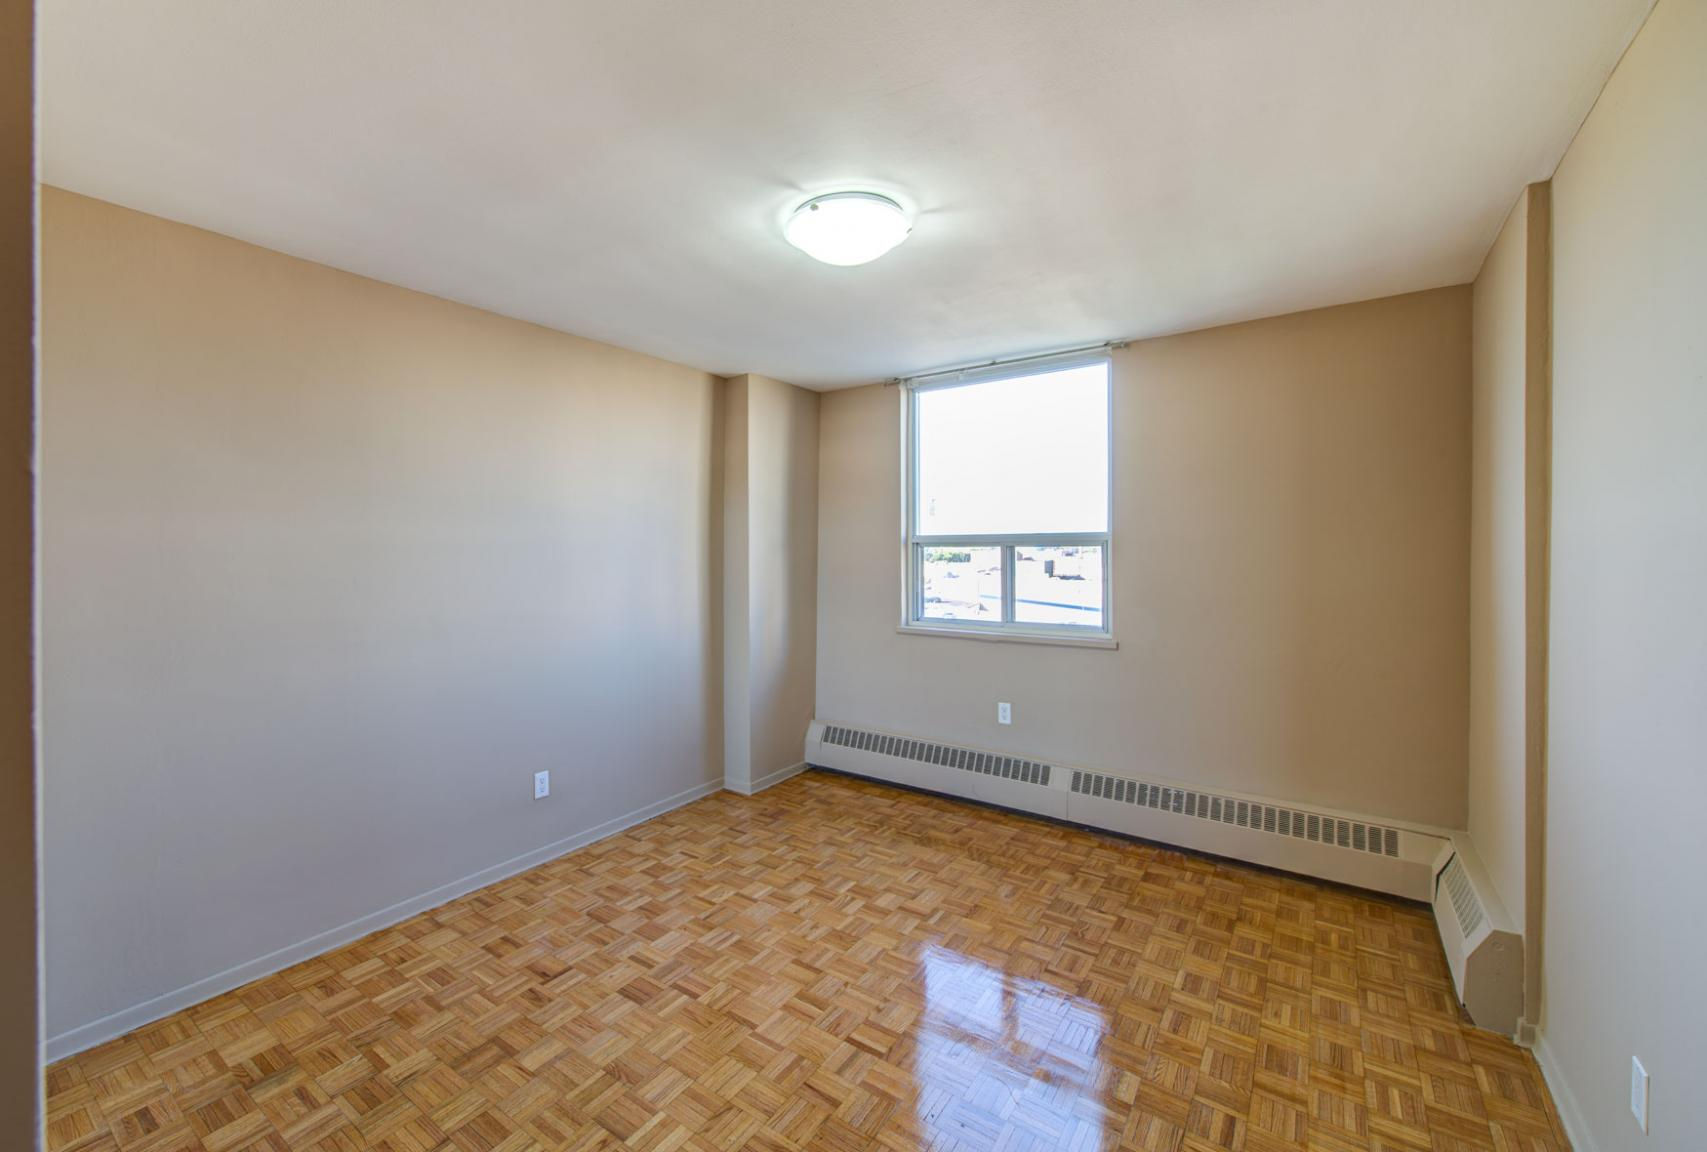 1 bedroom Apartments for rent in North-York at Hunters Lodge - Photo 42 - RentersPages – L400651